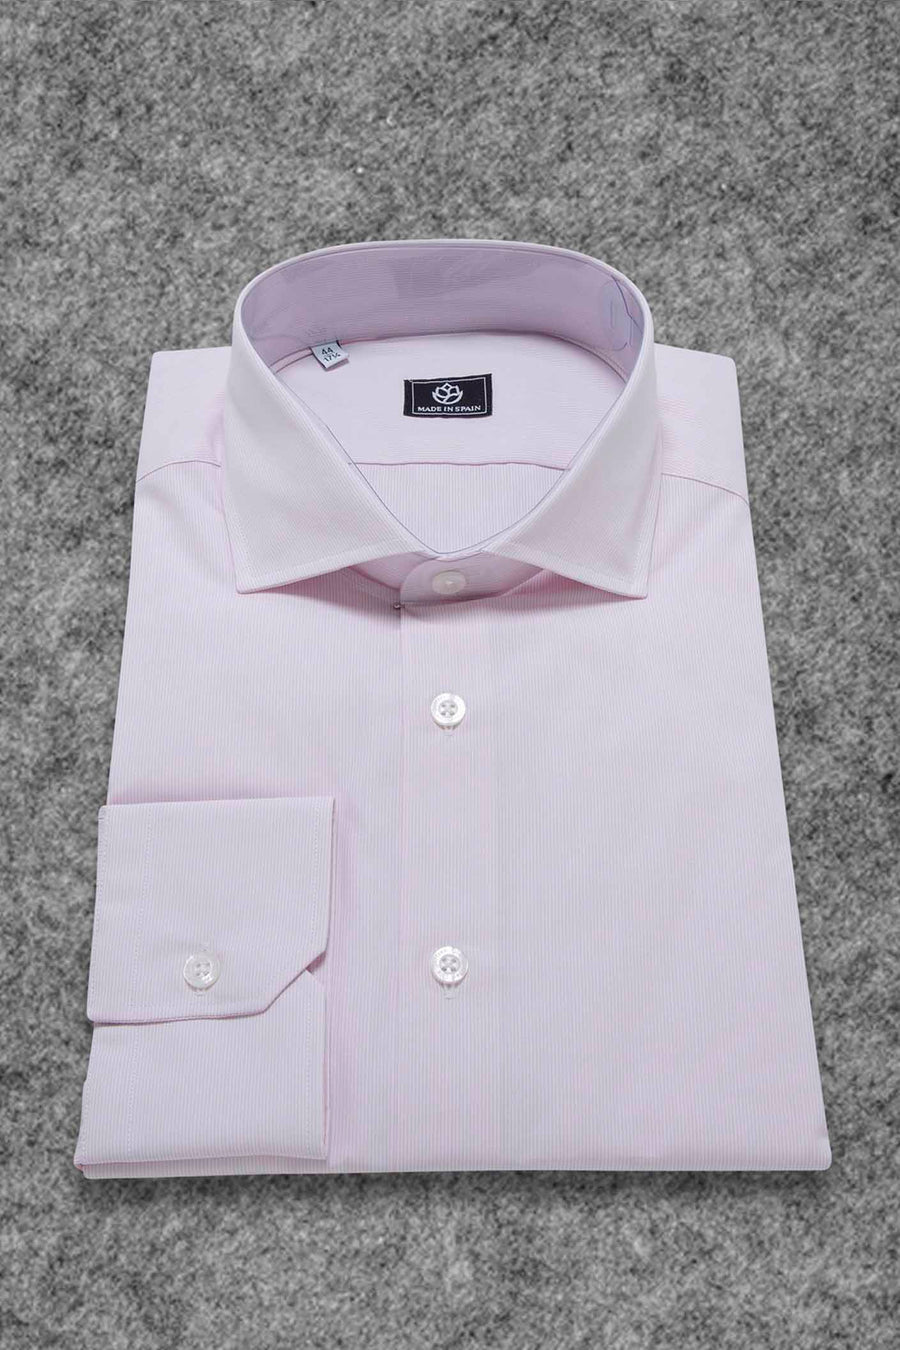 White and Pink Micro Striped Dress Shirt WITHOUT Cufflinks